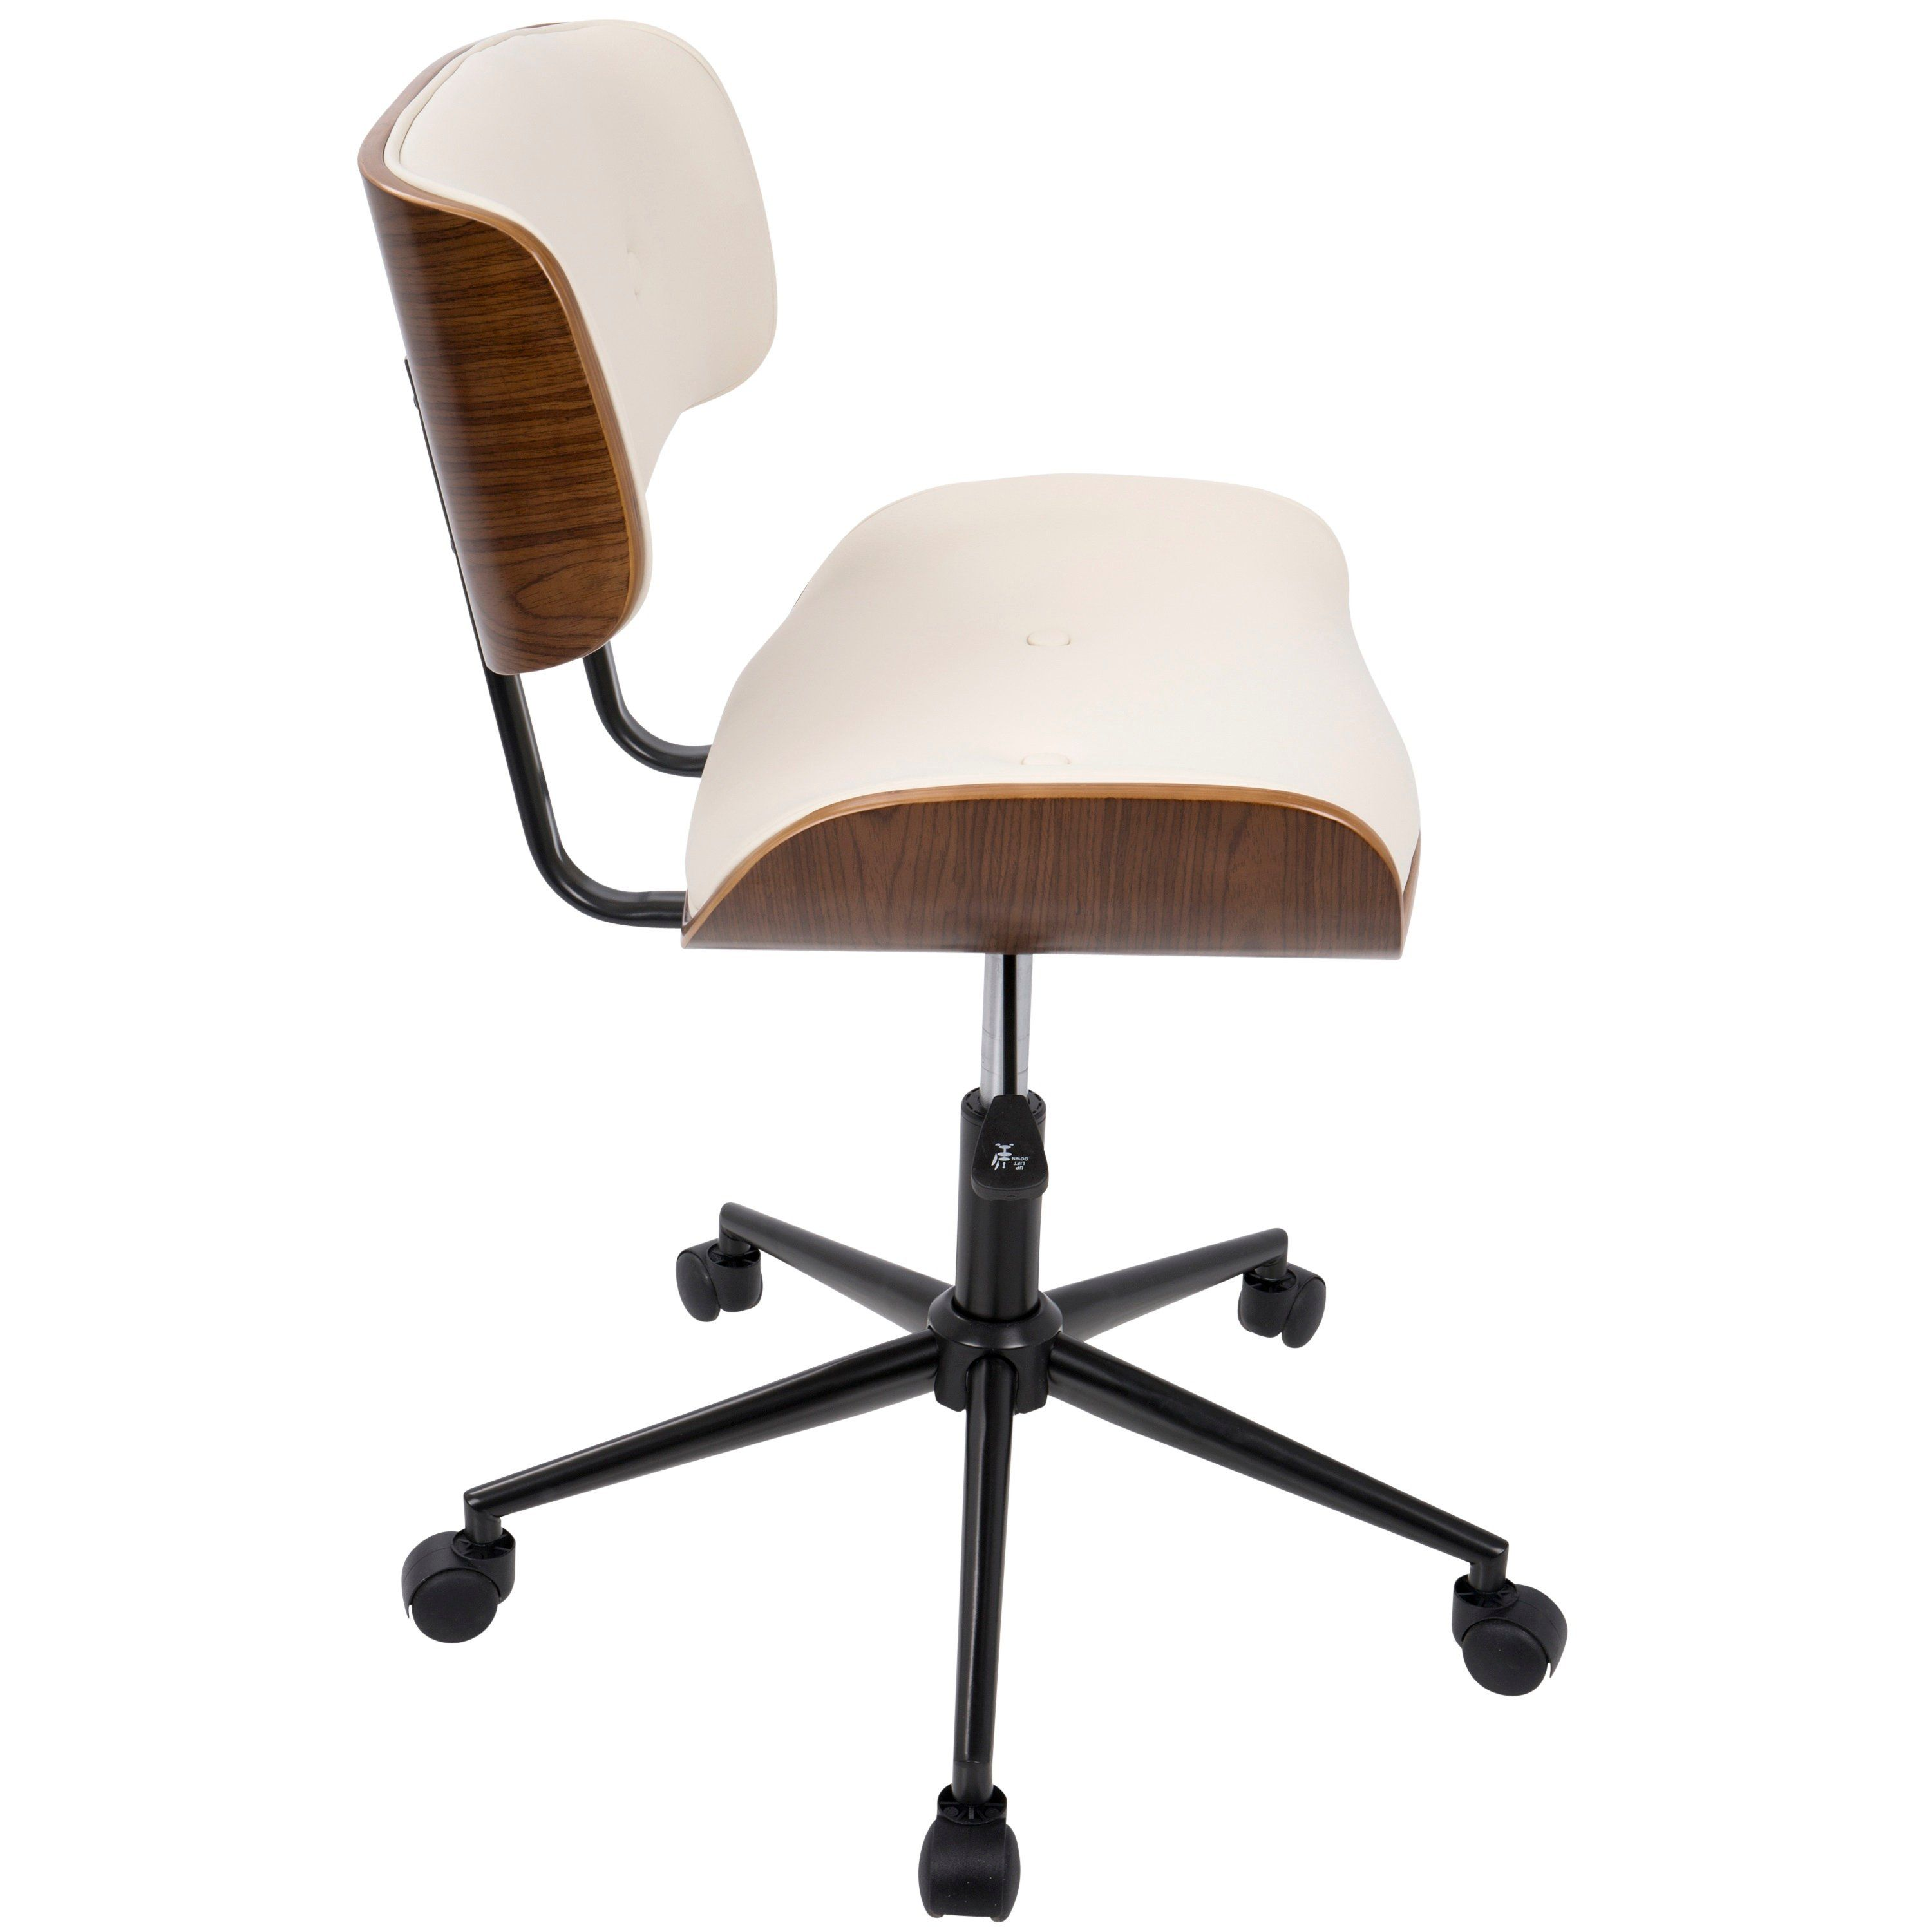 Walnut And Cream Mid Century Modern Office Chair Lombardi In